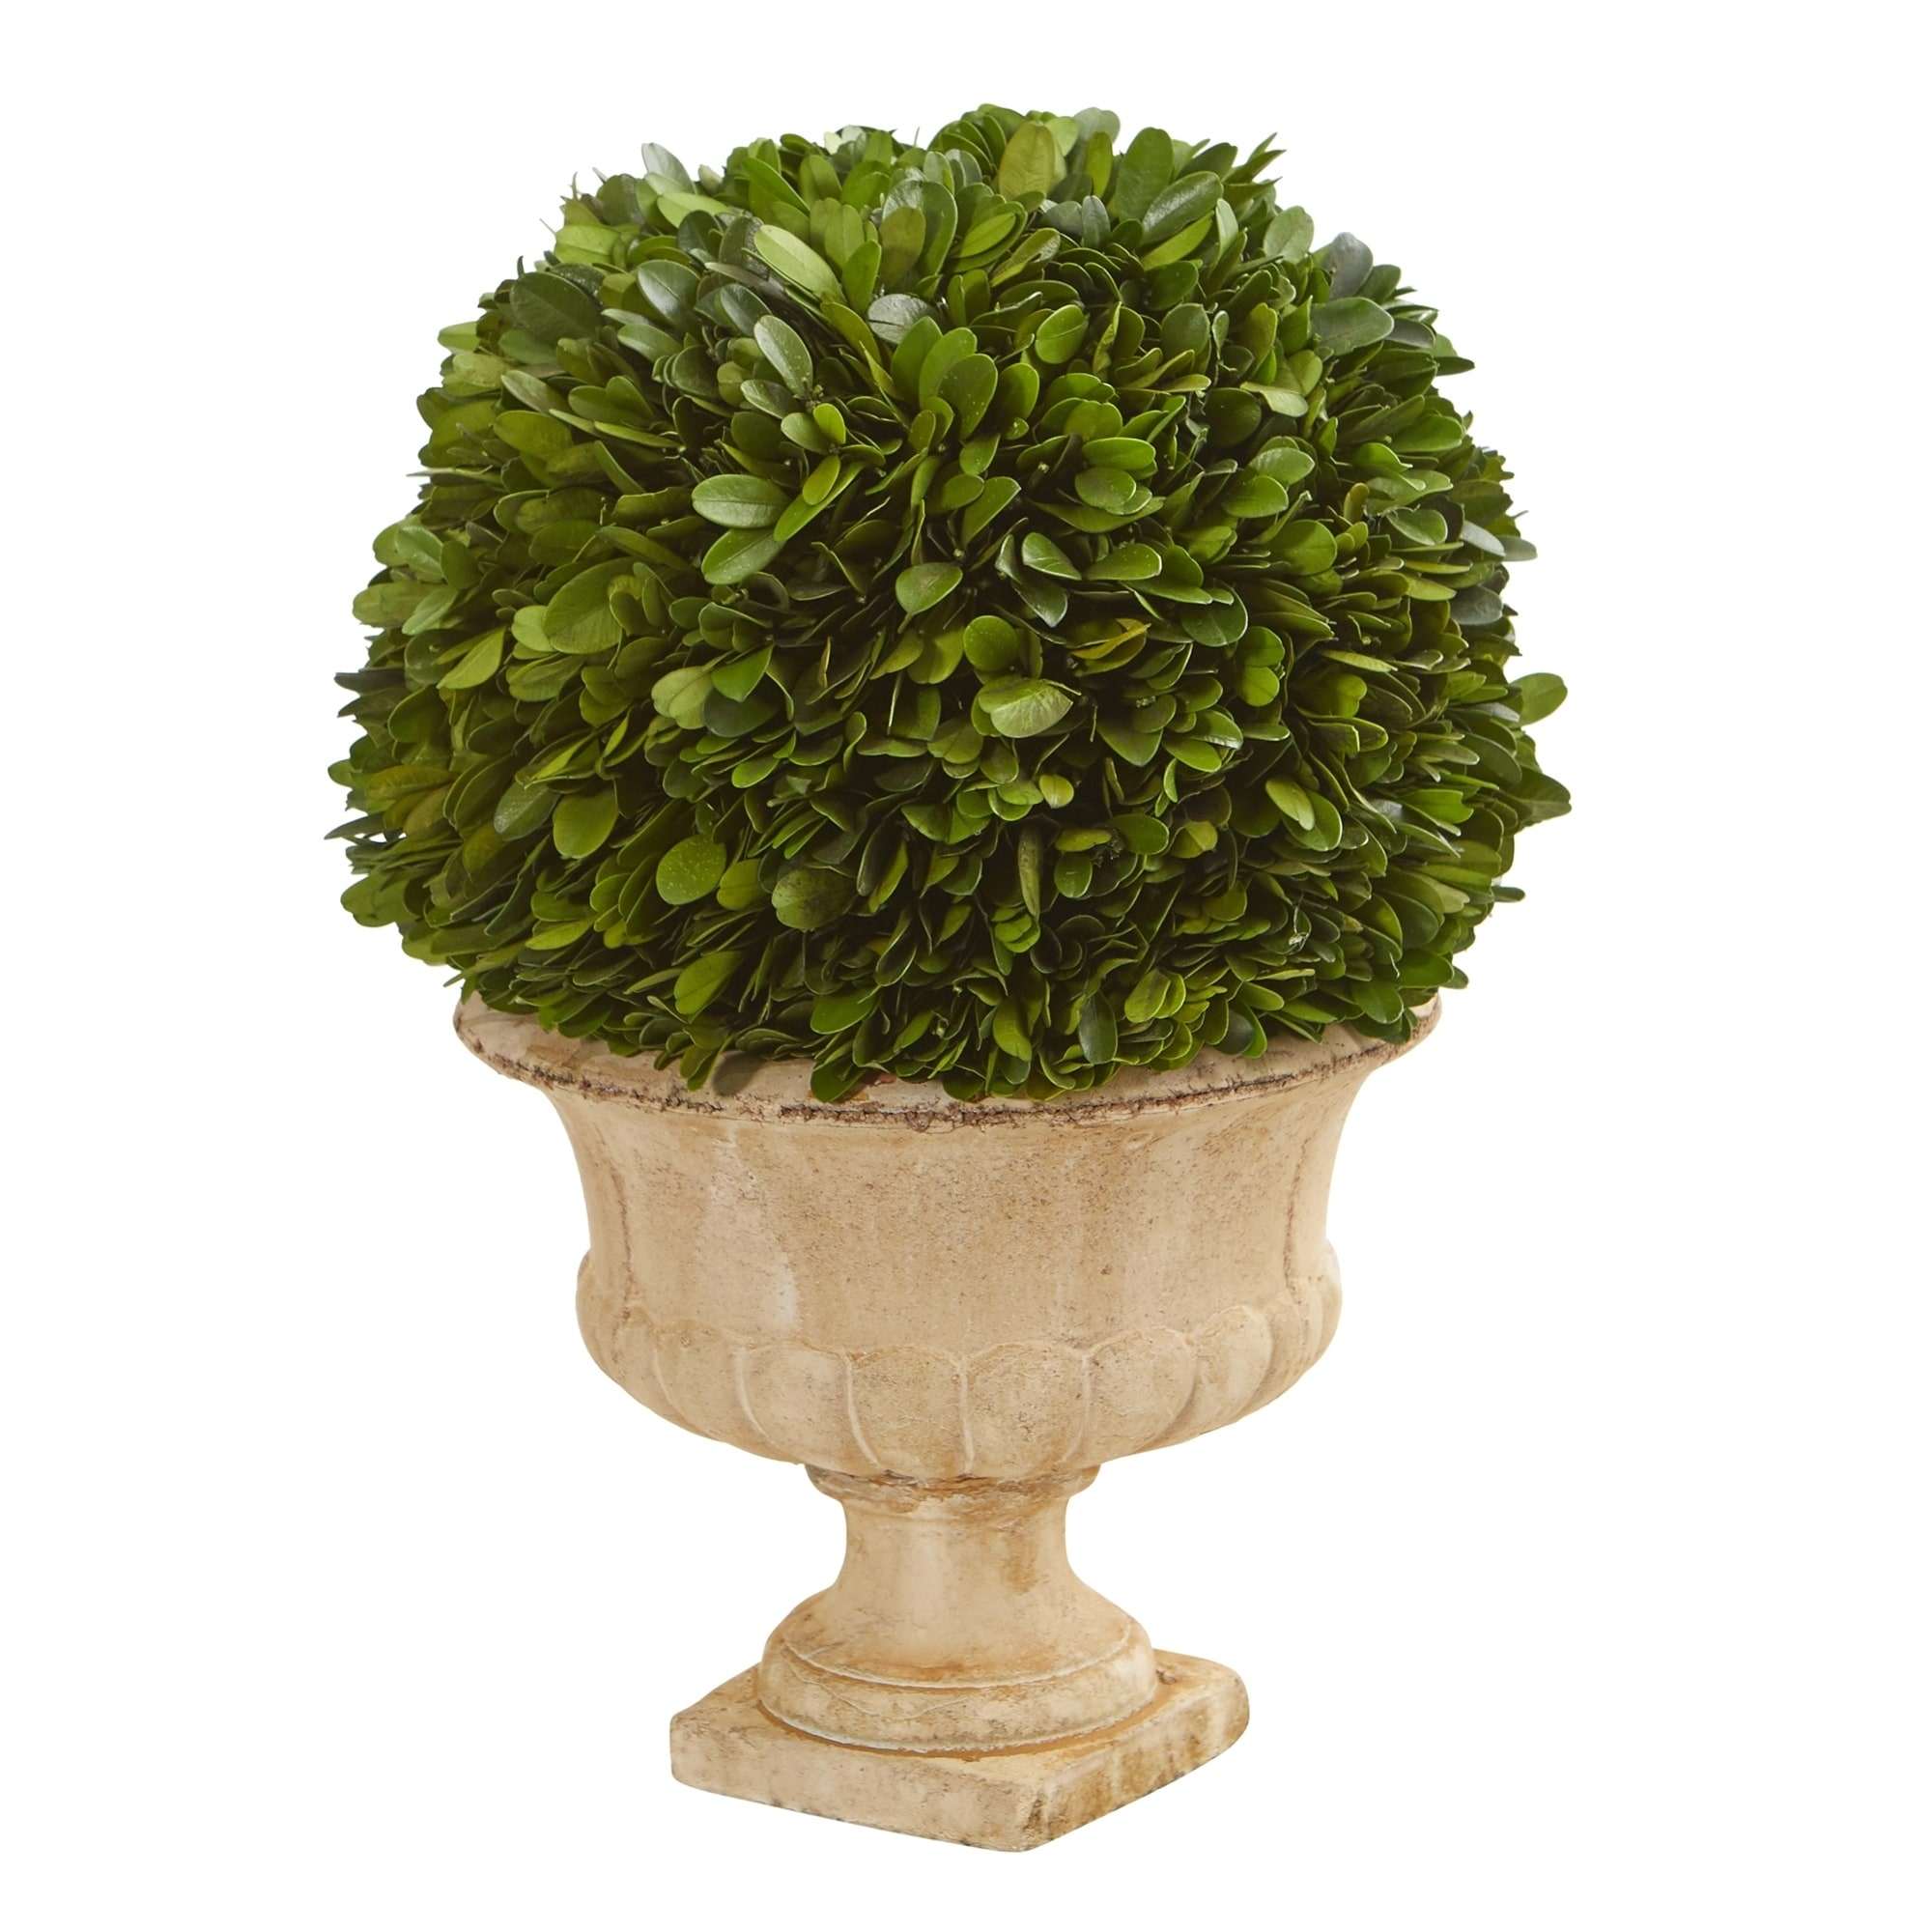 12 Boxwood Topiary Ball Preserved Plant In Decorative Urn Overstock 30638524